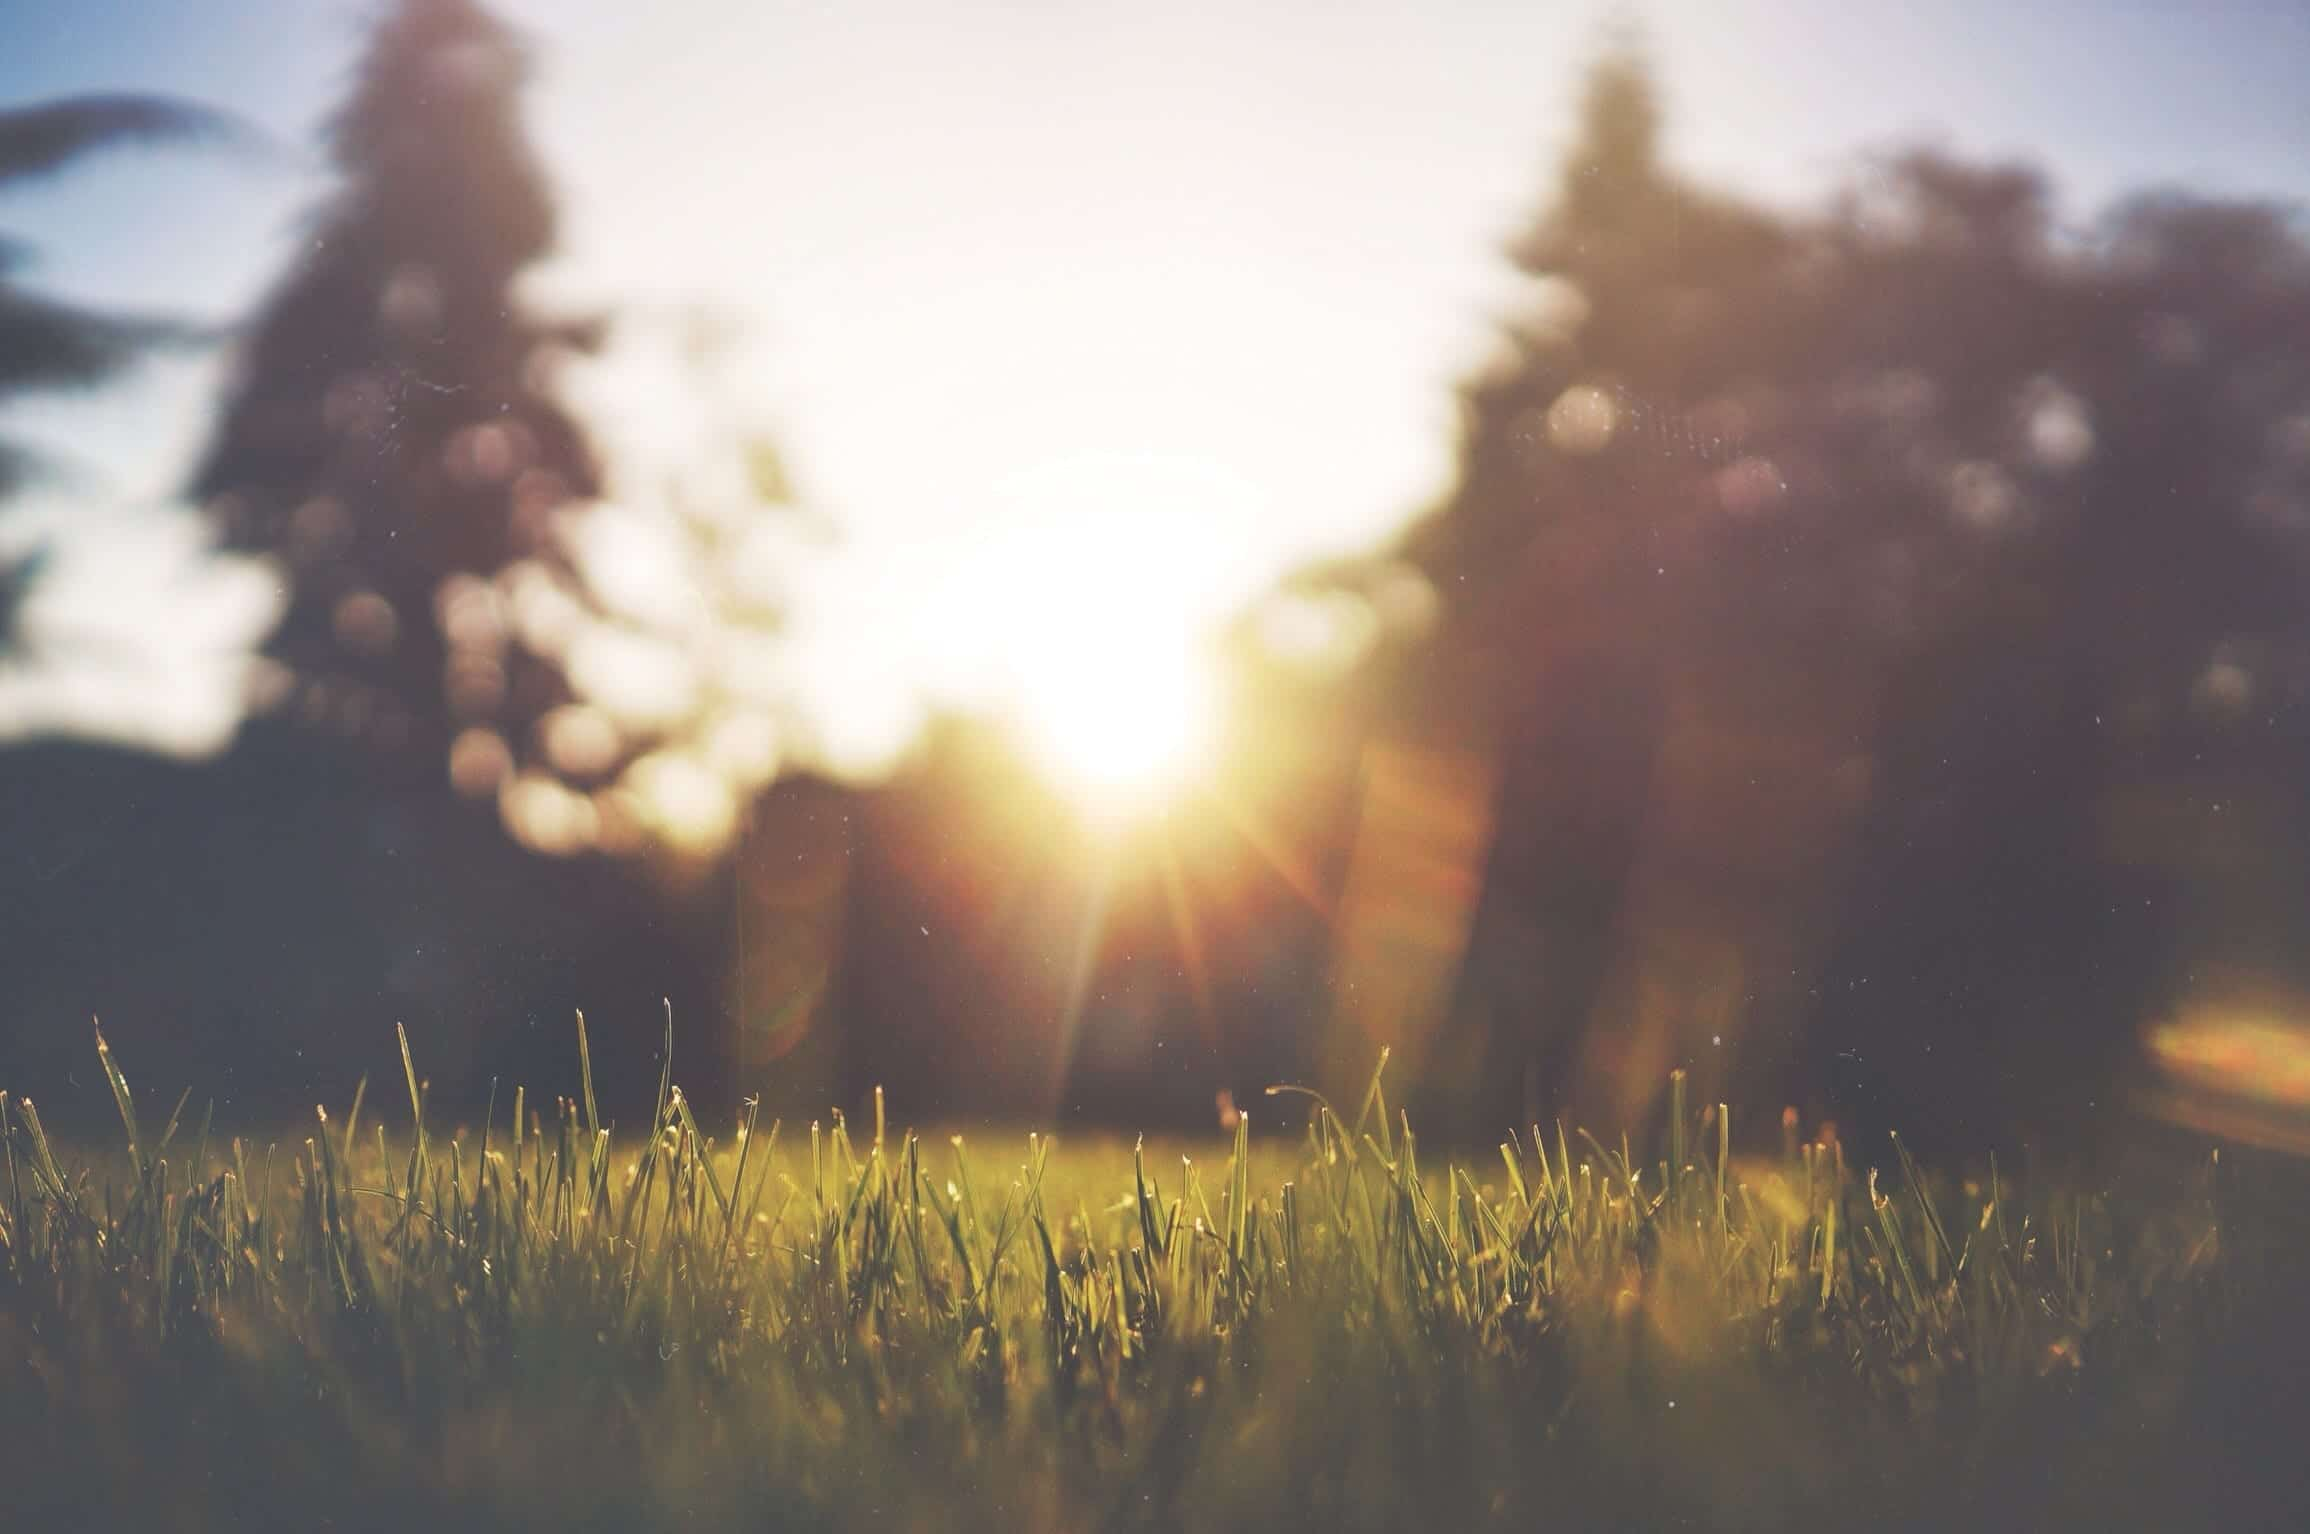 Soft focus shot of grass and trees with morning sun; image by Jake Givens, via Unsplash.com.